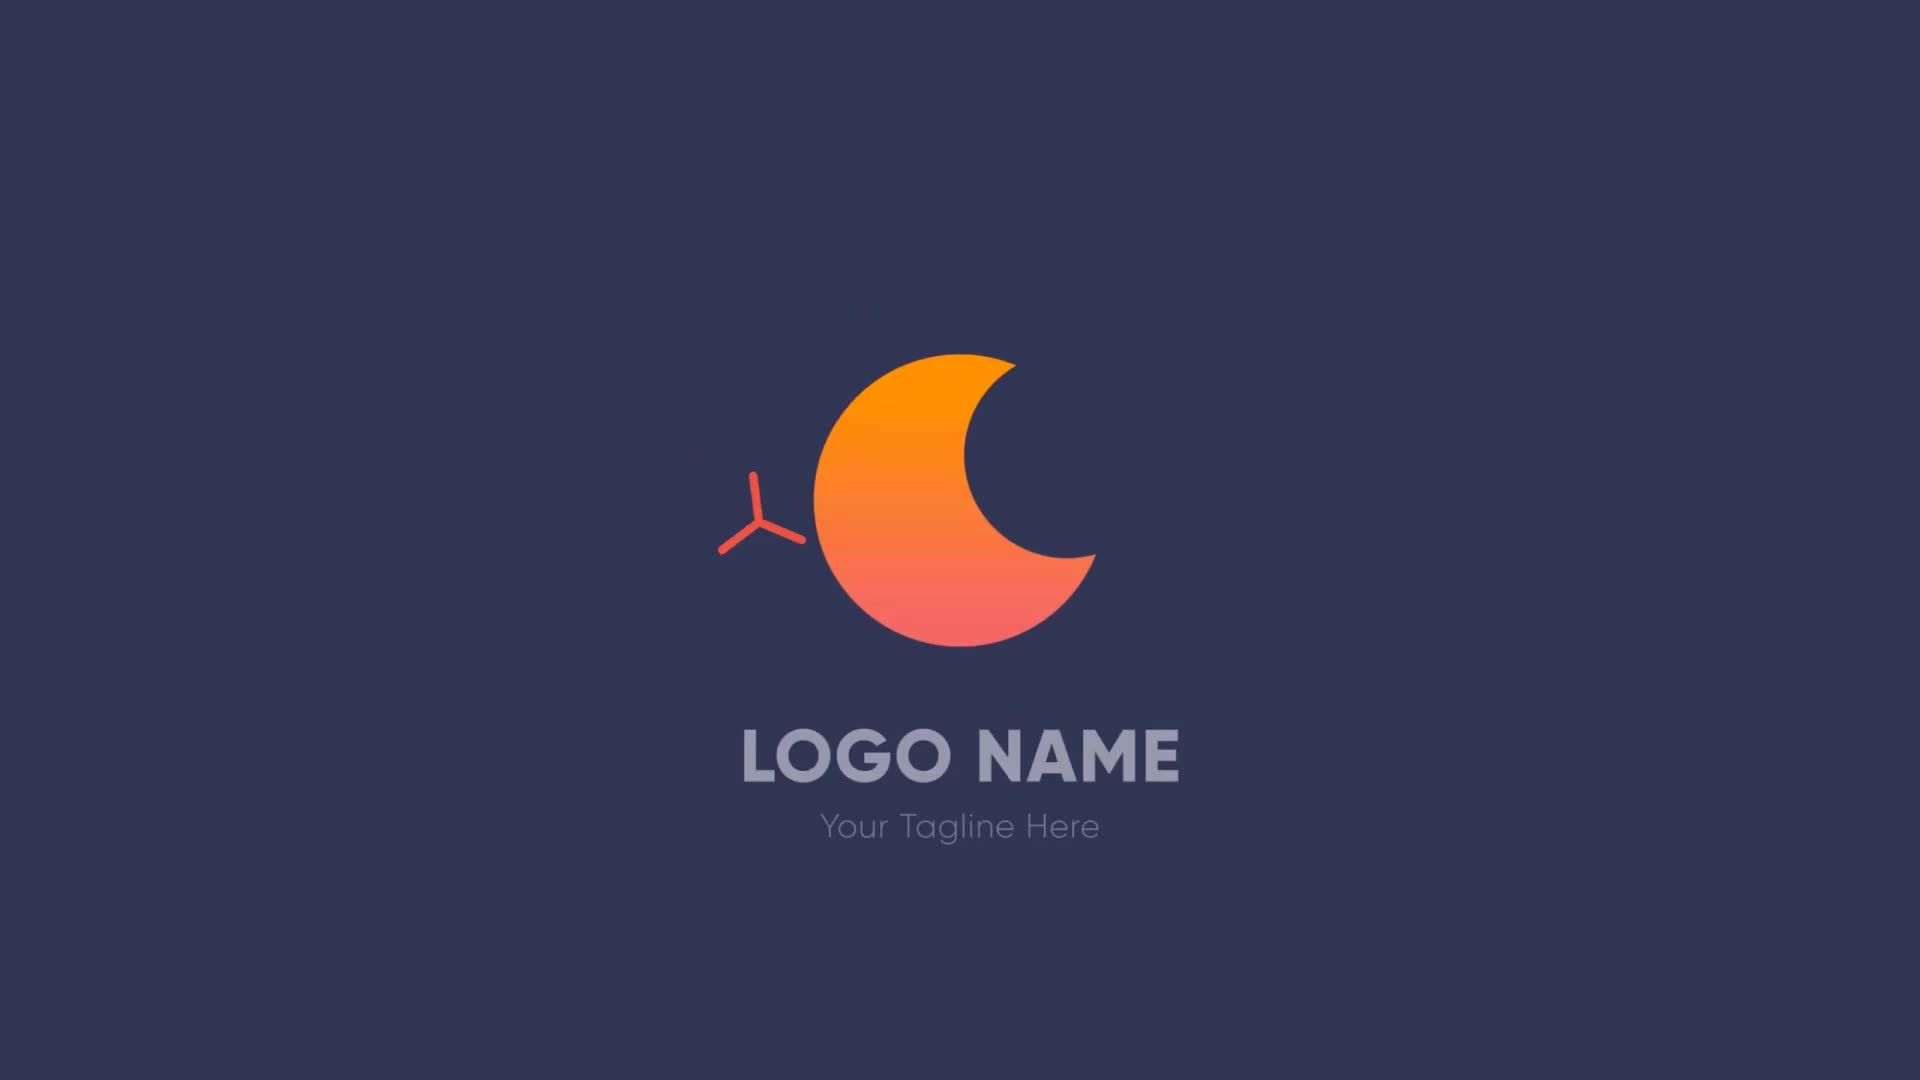 Minimal Shape Logo Videohive 26434864 After Effects Image 2